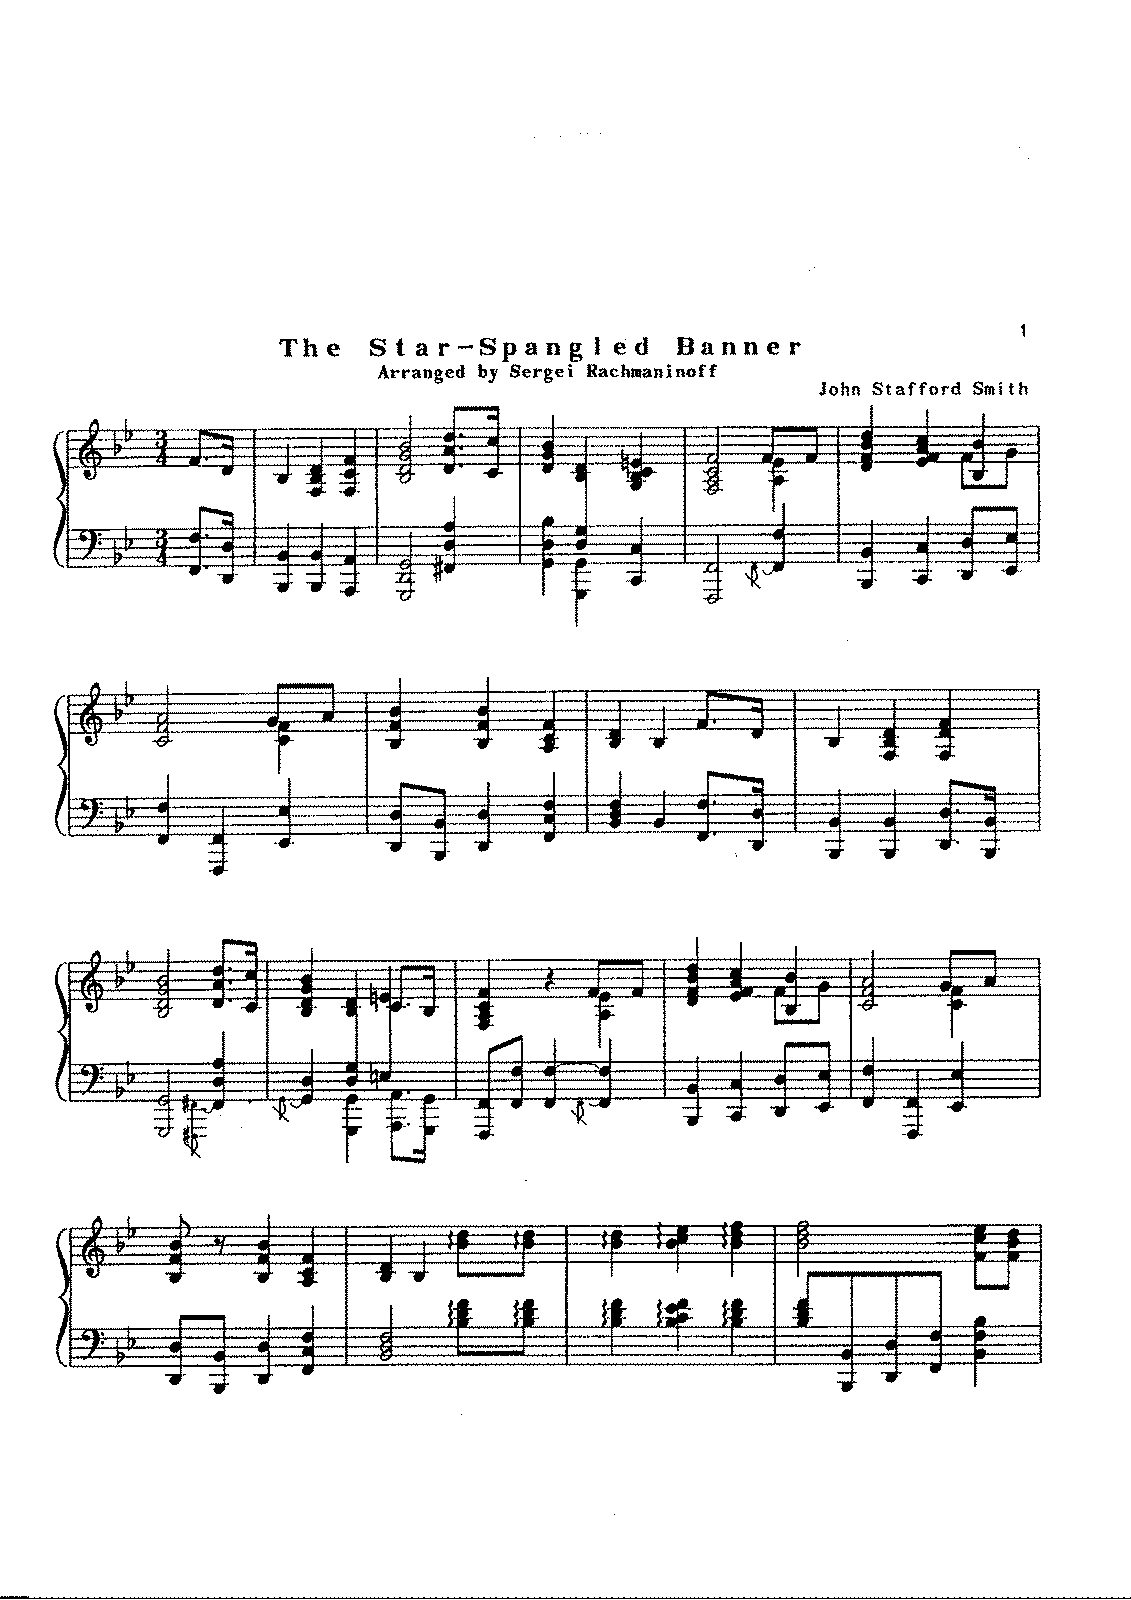 Smith-Rachmaninoff-The-Star-Spangled-0Banner.pdf